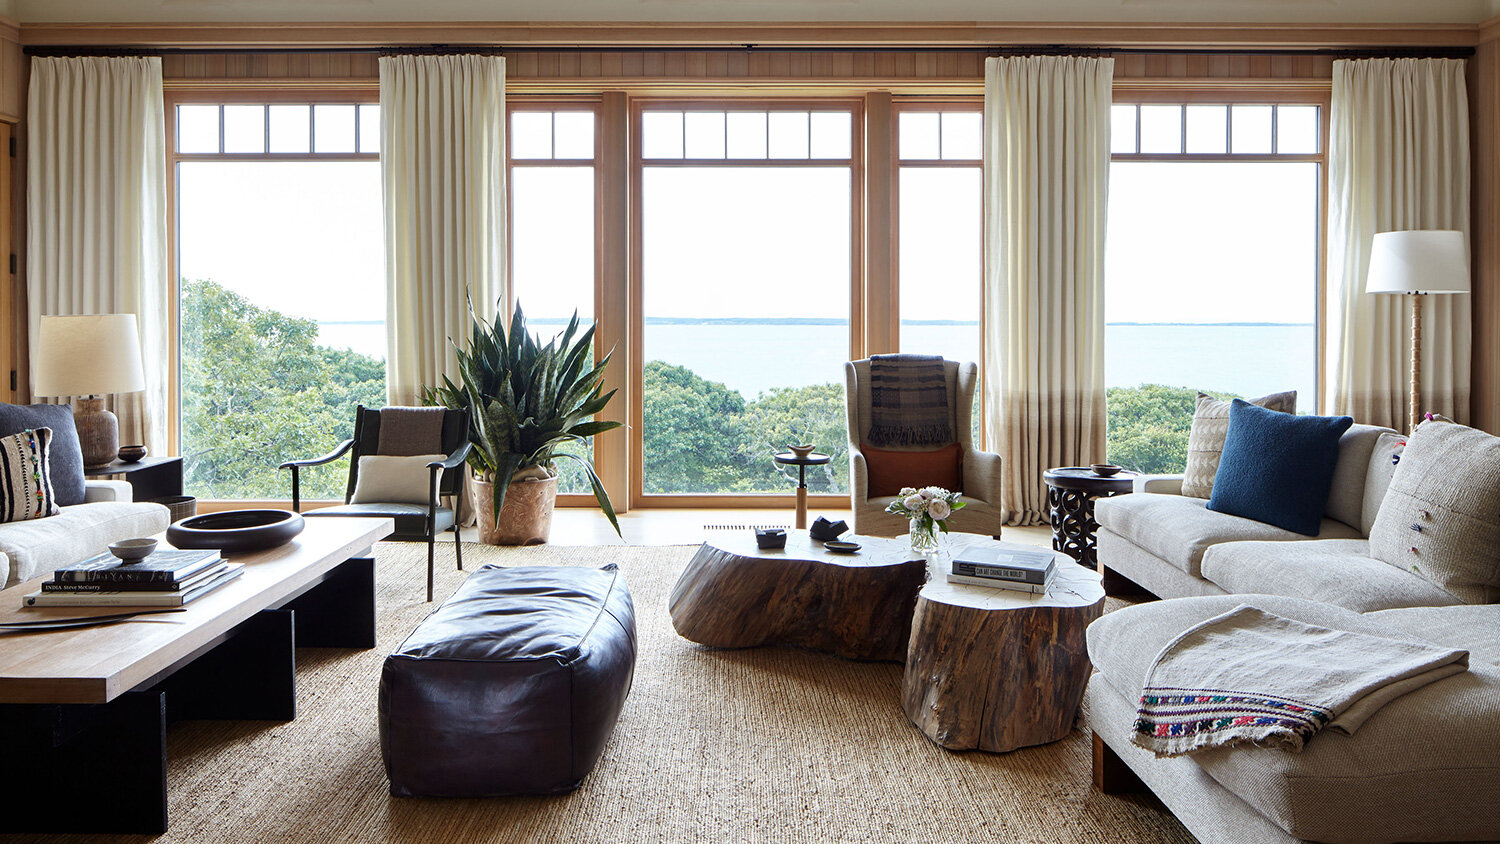 Terri Ricci Interiors - Living Room Design